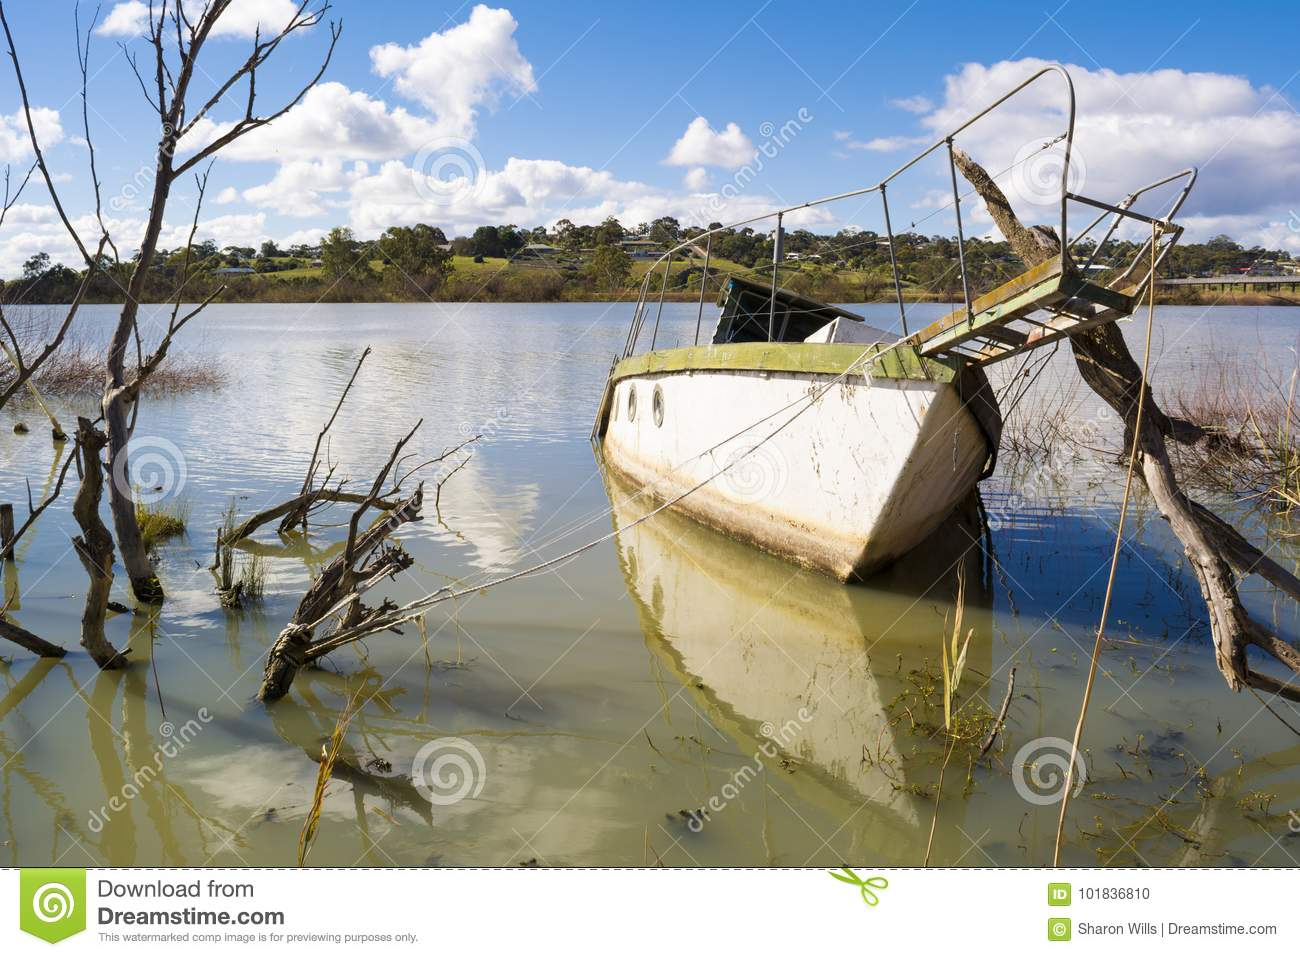 Barco de navegación hundido en Murray River, Murray Bridge, Austra del sur